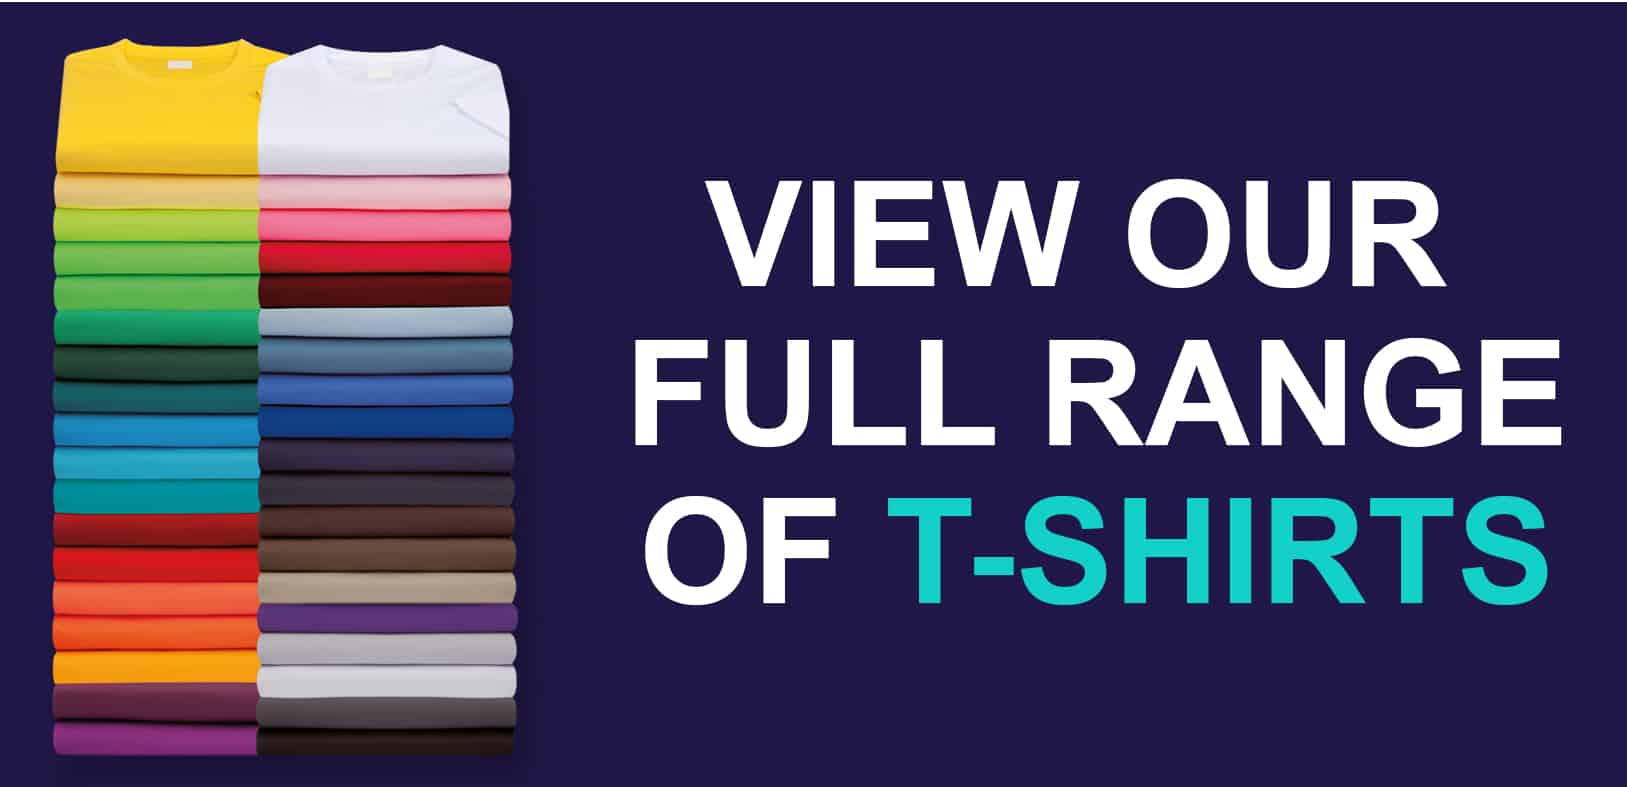 View Our Full Range of T-Shirts